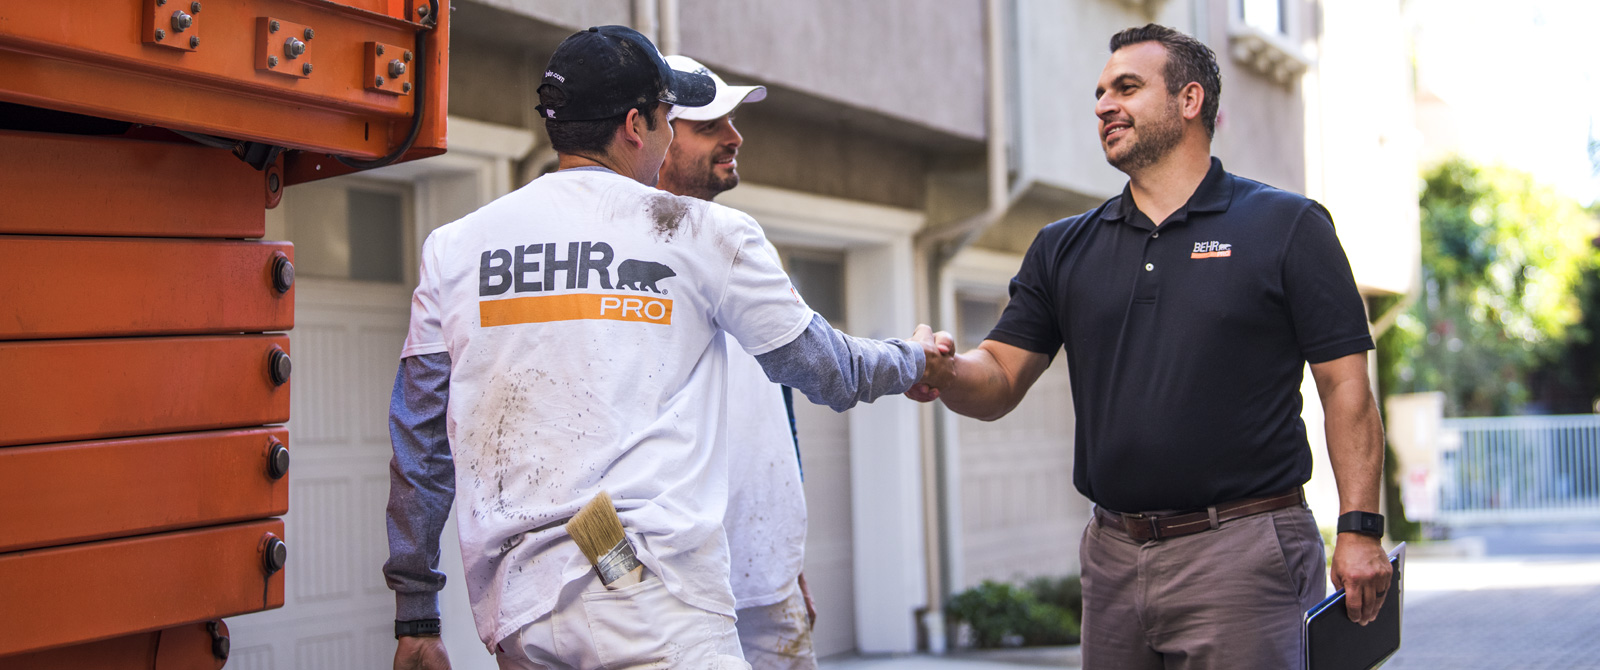 A BEHR PRO Rep shaking hands with on of the 2 Pro Painters. In the background is a multi family condo units.